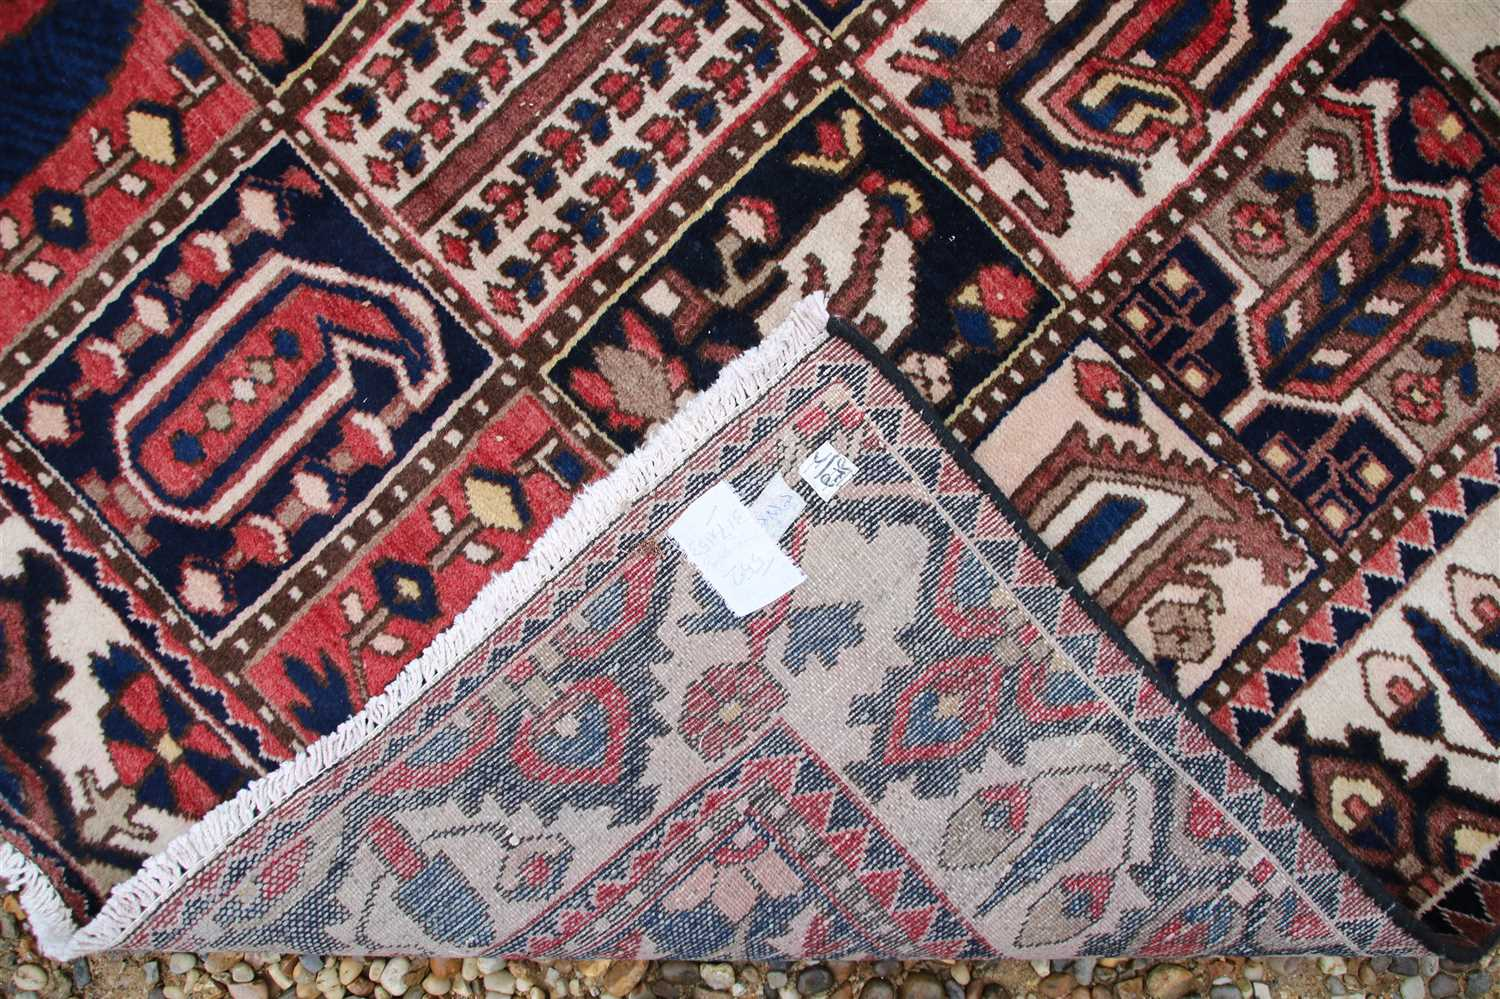 Lot 691 - Two ivory ground Caucasian rugs